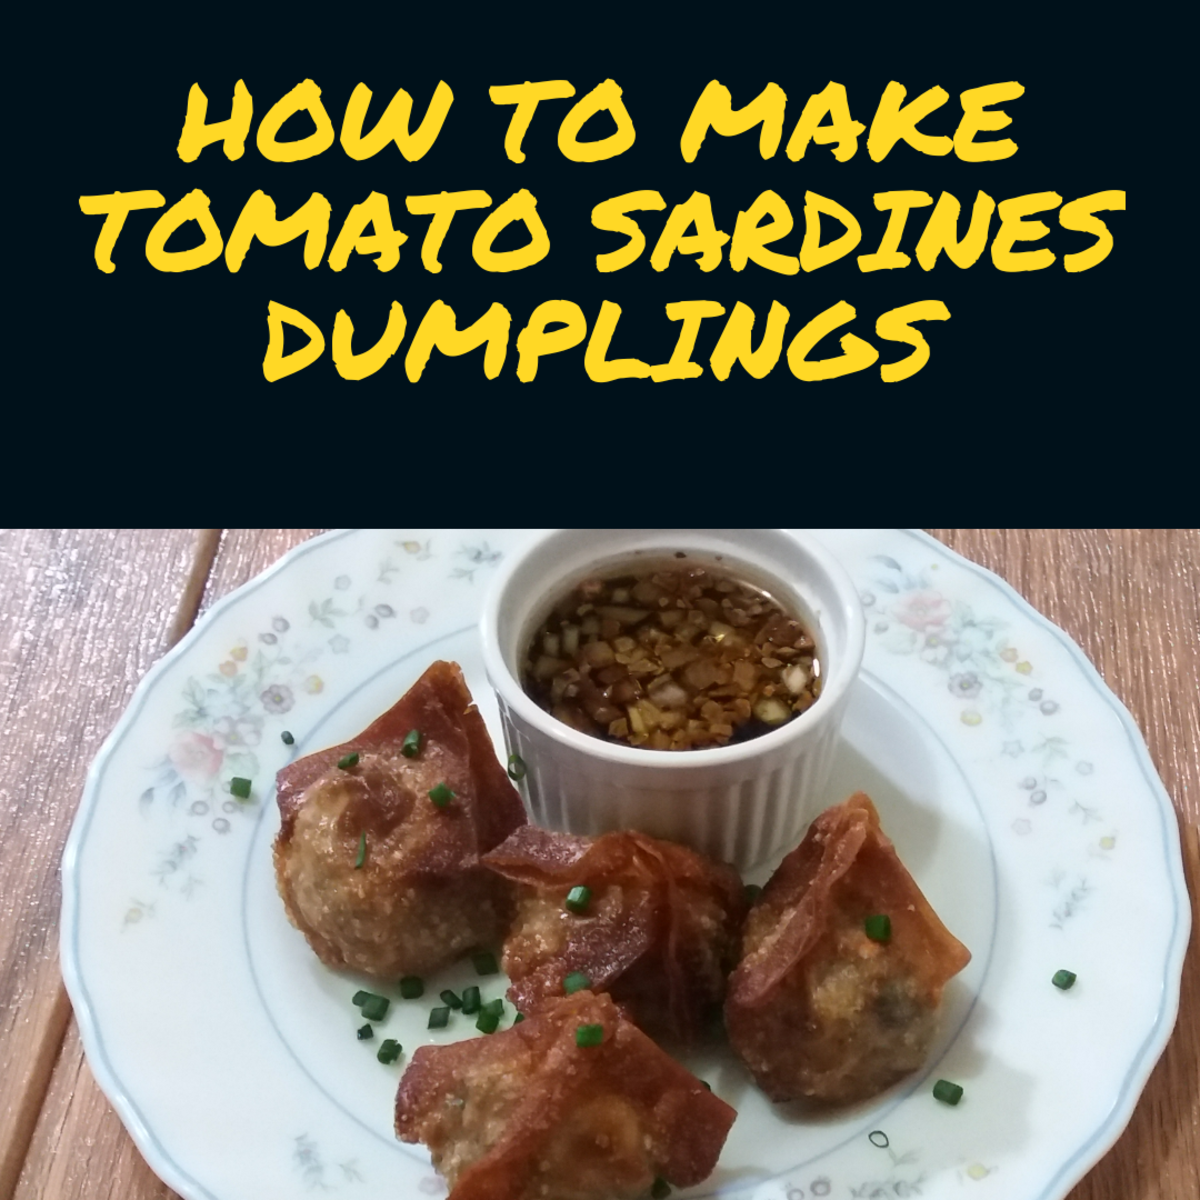 Learn how to make dumplings with sardines in tomato sauce.